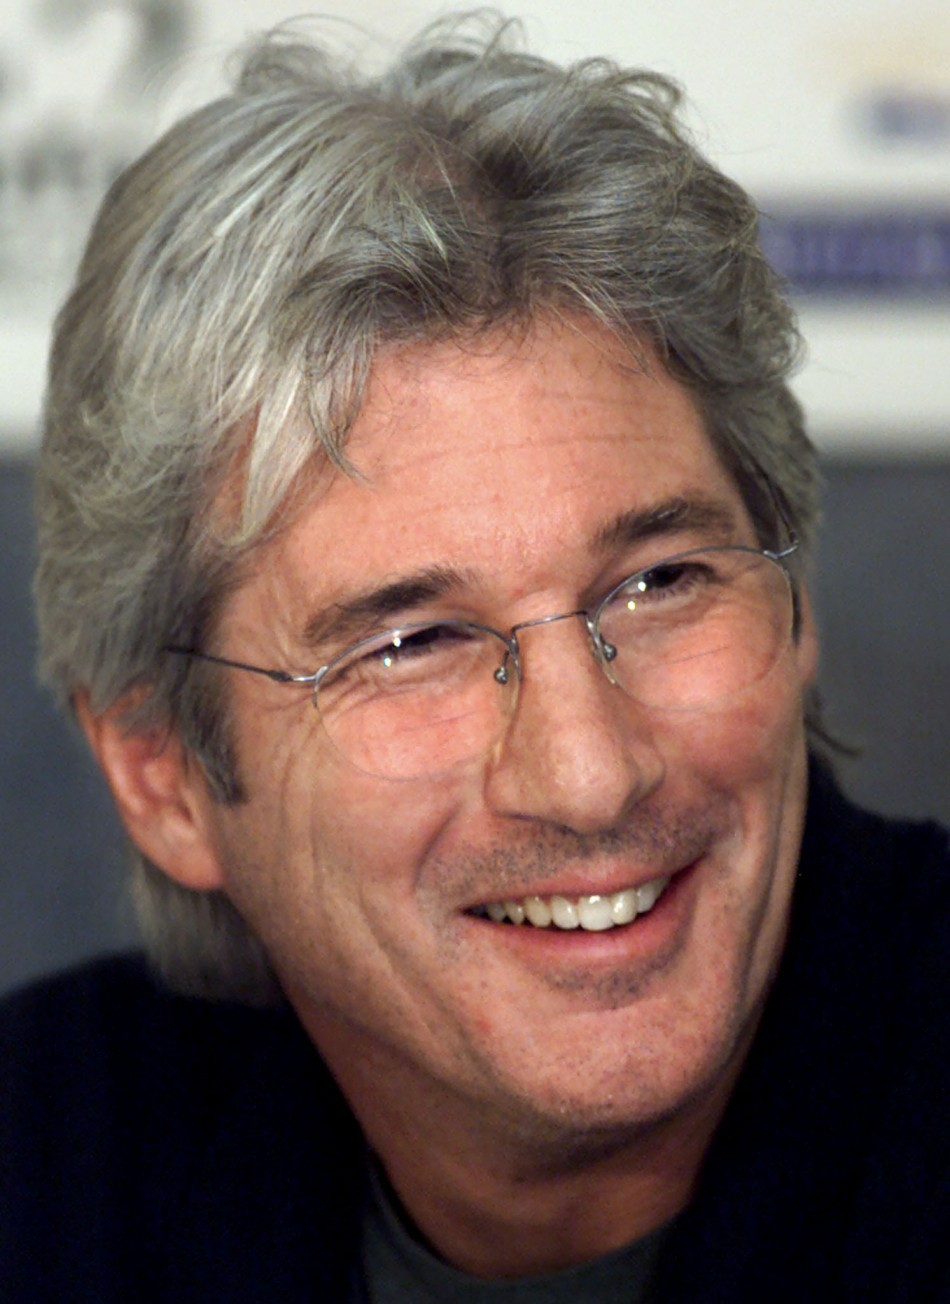 richard-gere-might-join-rest-cast-best-exotic-marigold-hotel-sequel 12 of The Most Attractive Actors Over 60